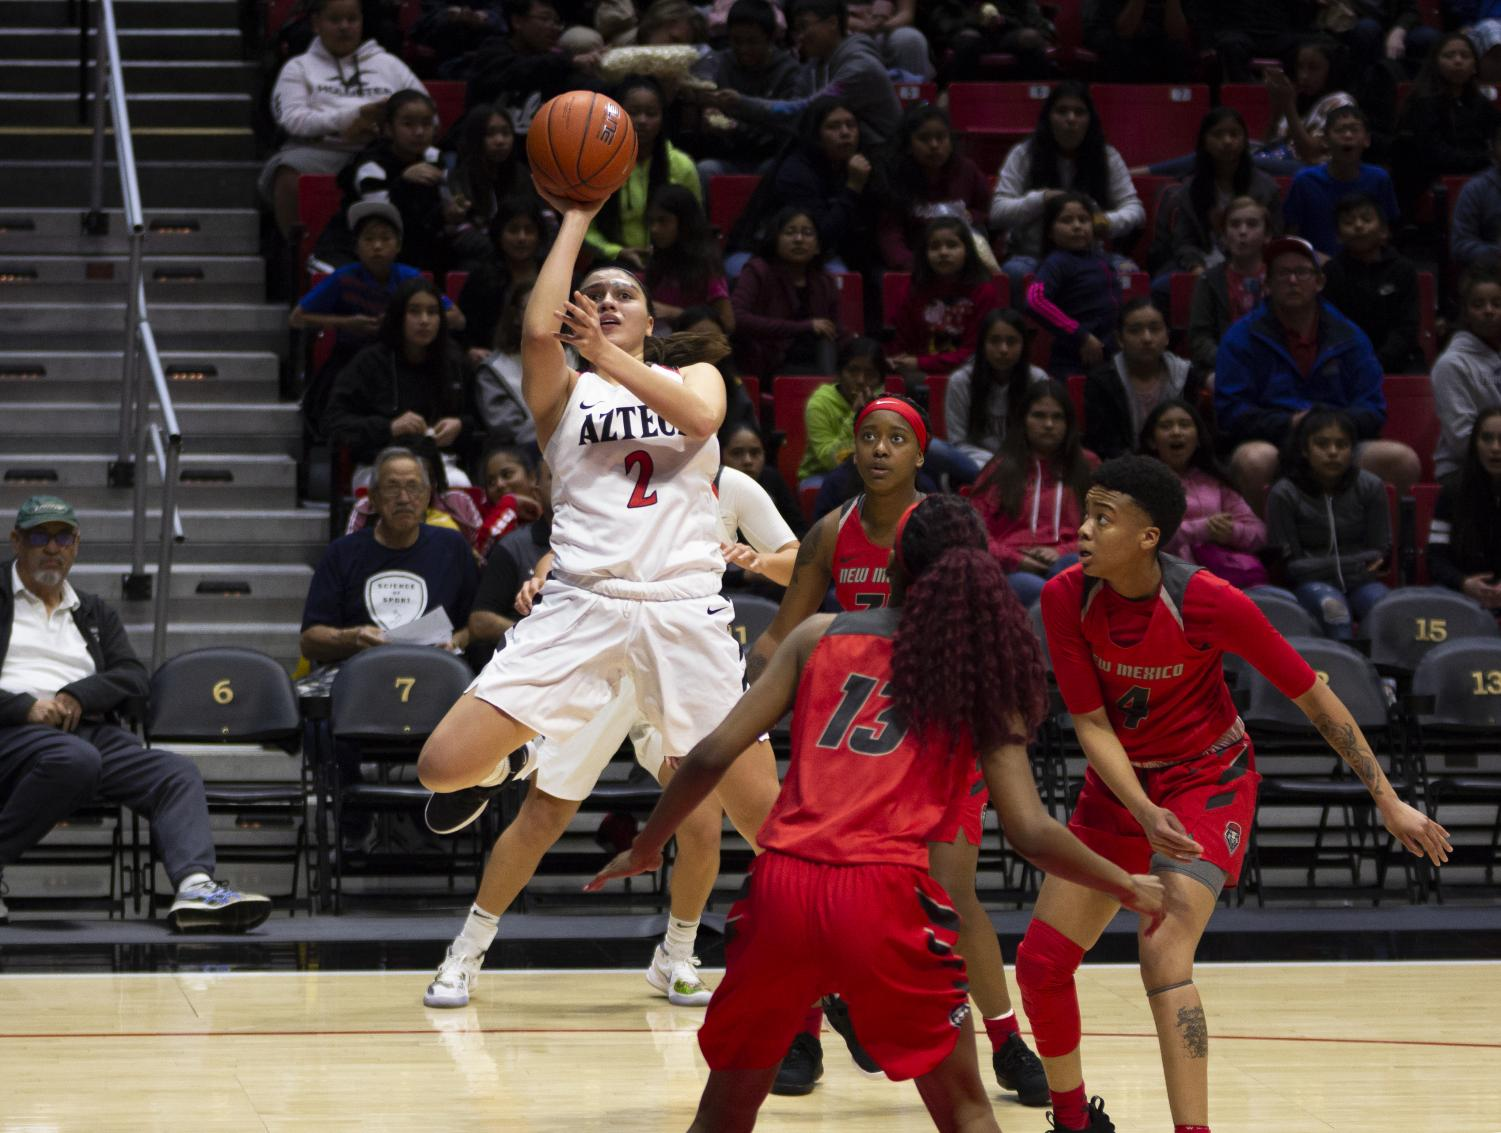 Freshman guard Sophia Ramos lays the ball over the New Mexico defense during the Aztecs' 61-59 victory over the Lobos on Feb. 6 at Viejas Arena.